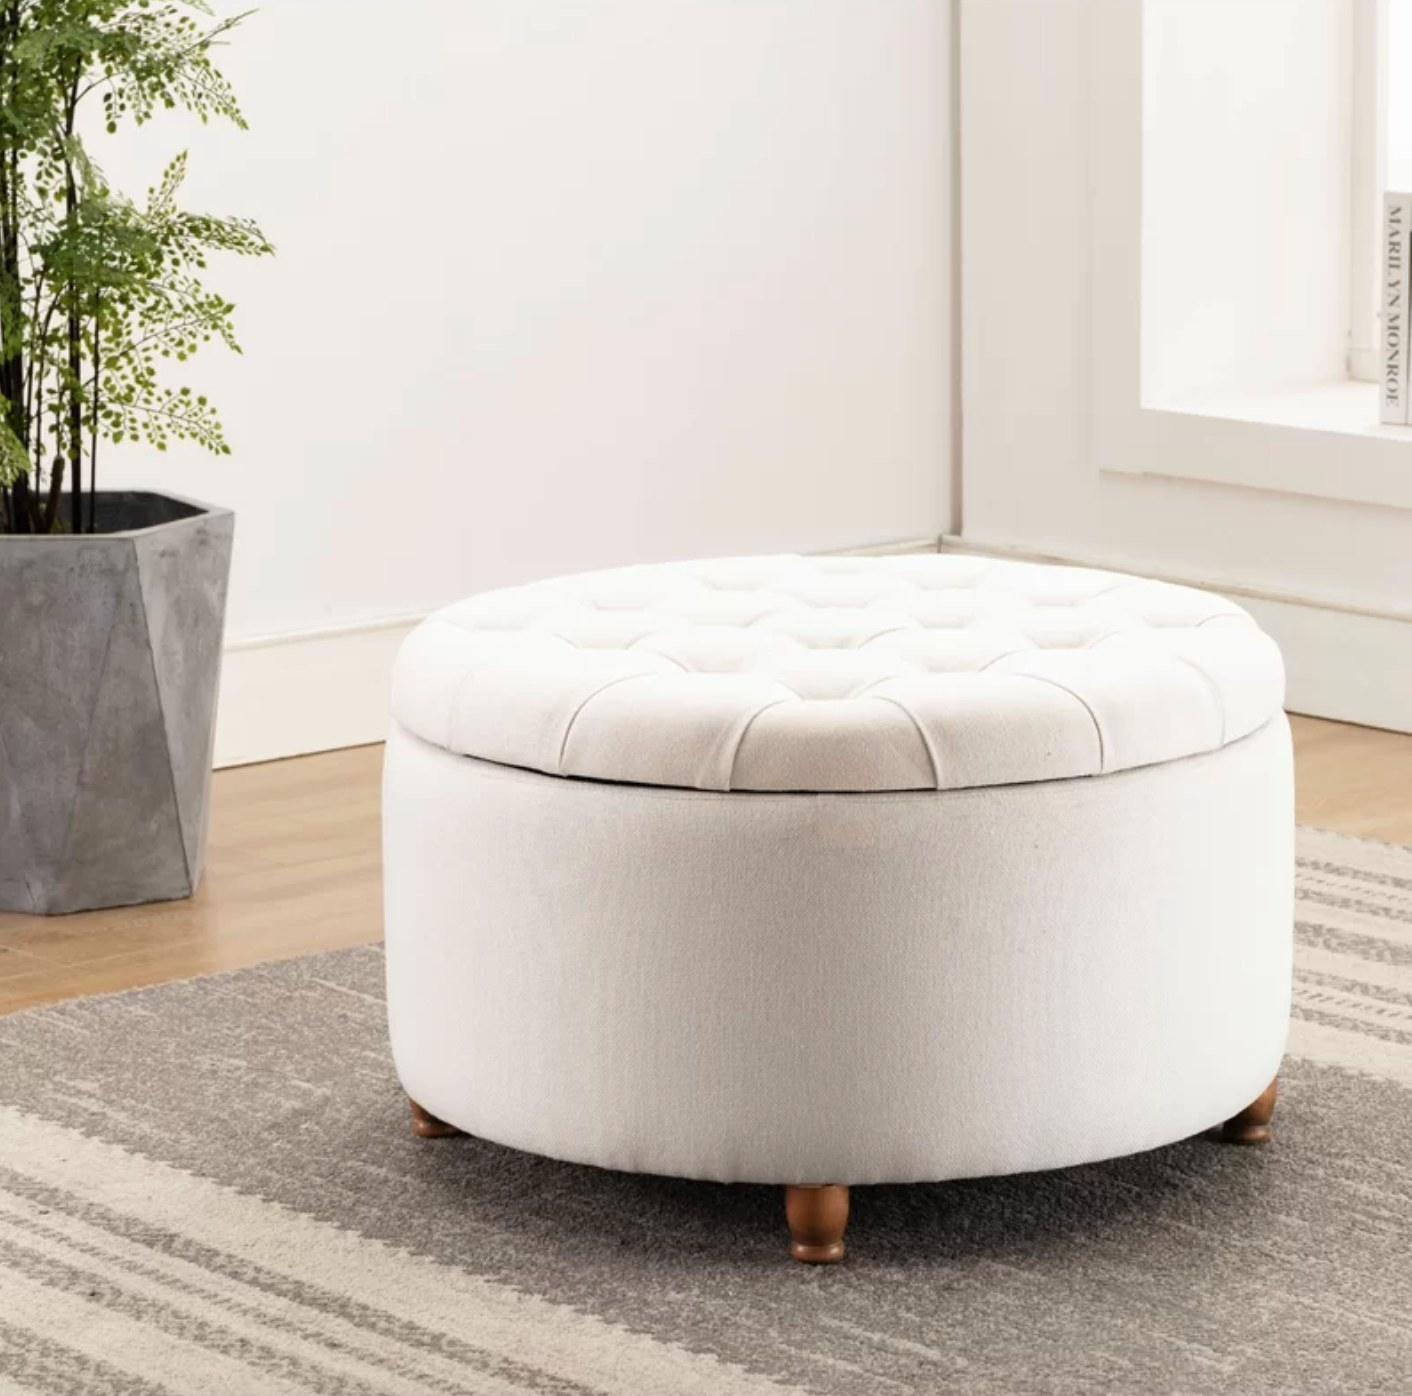 The tufted ottoman with storage in cream